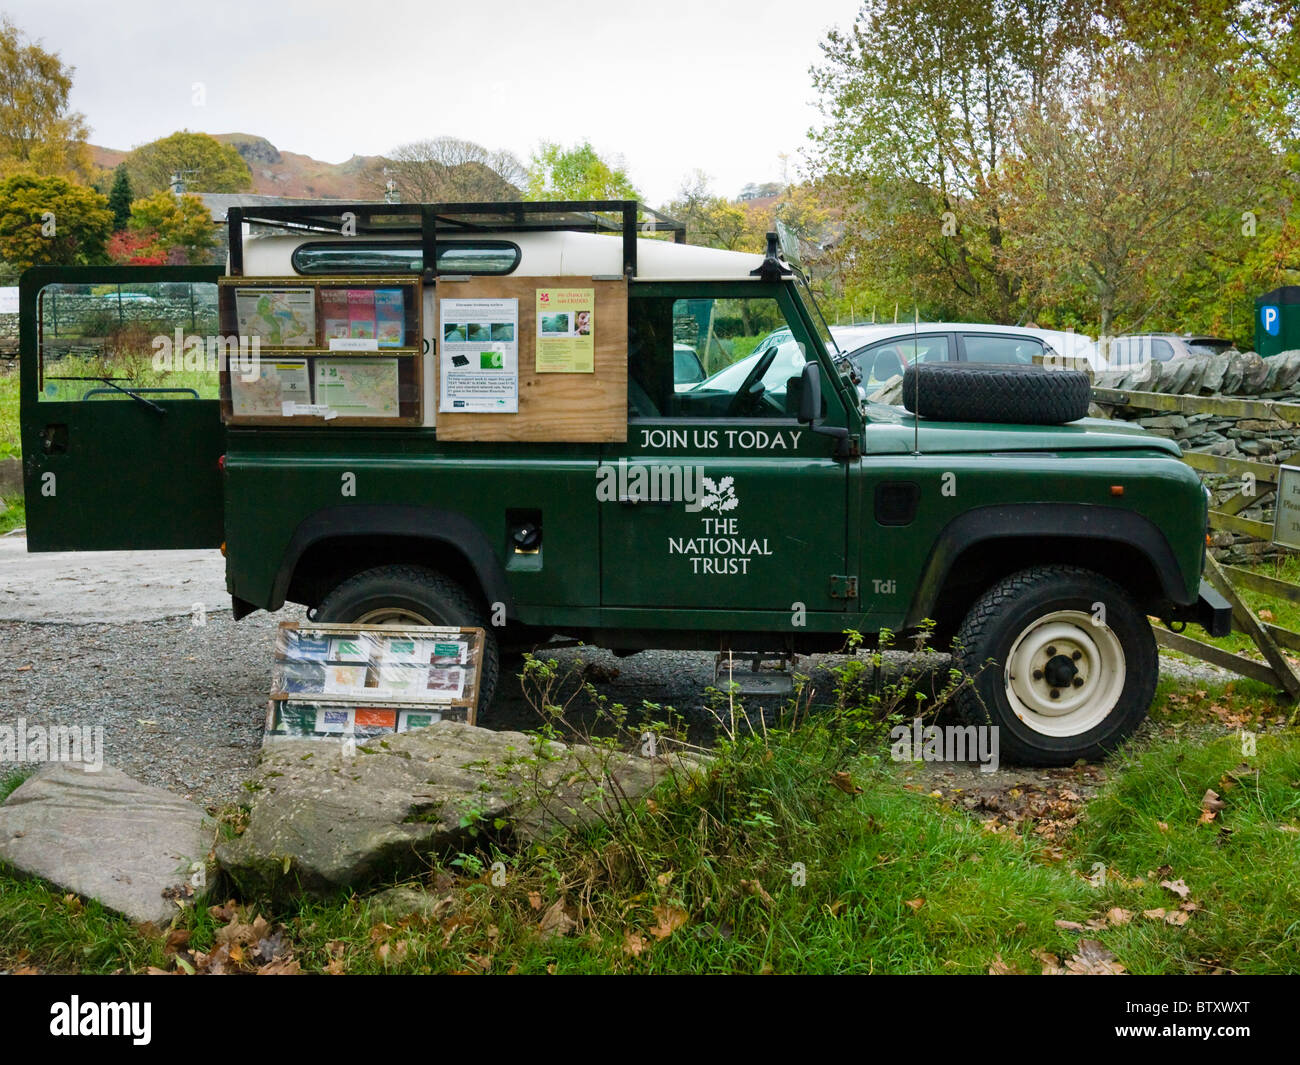 A National Trust Land Rover Defender in a car park at Elterwater in the Lake District National Park with a display - Stock Image